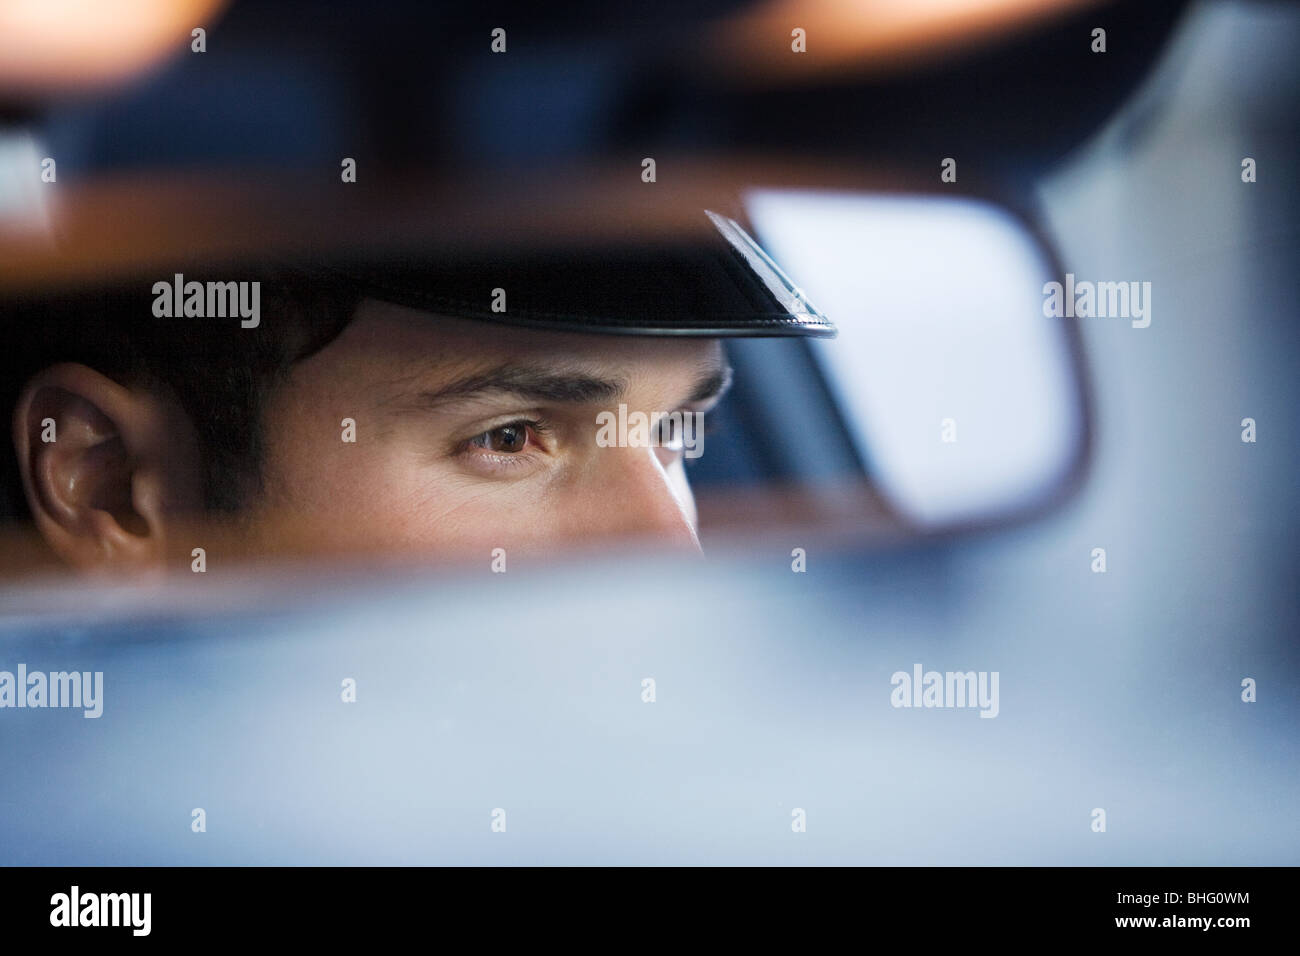 Chauffeur reflected in rear view mirror - Stock Image